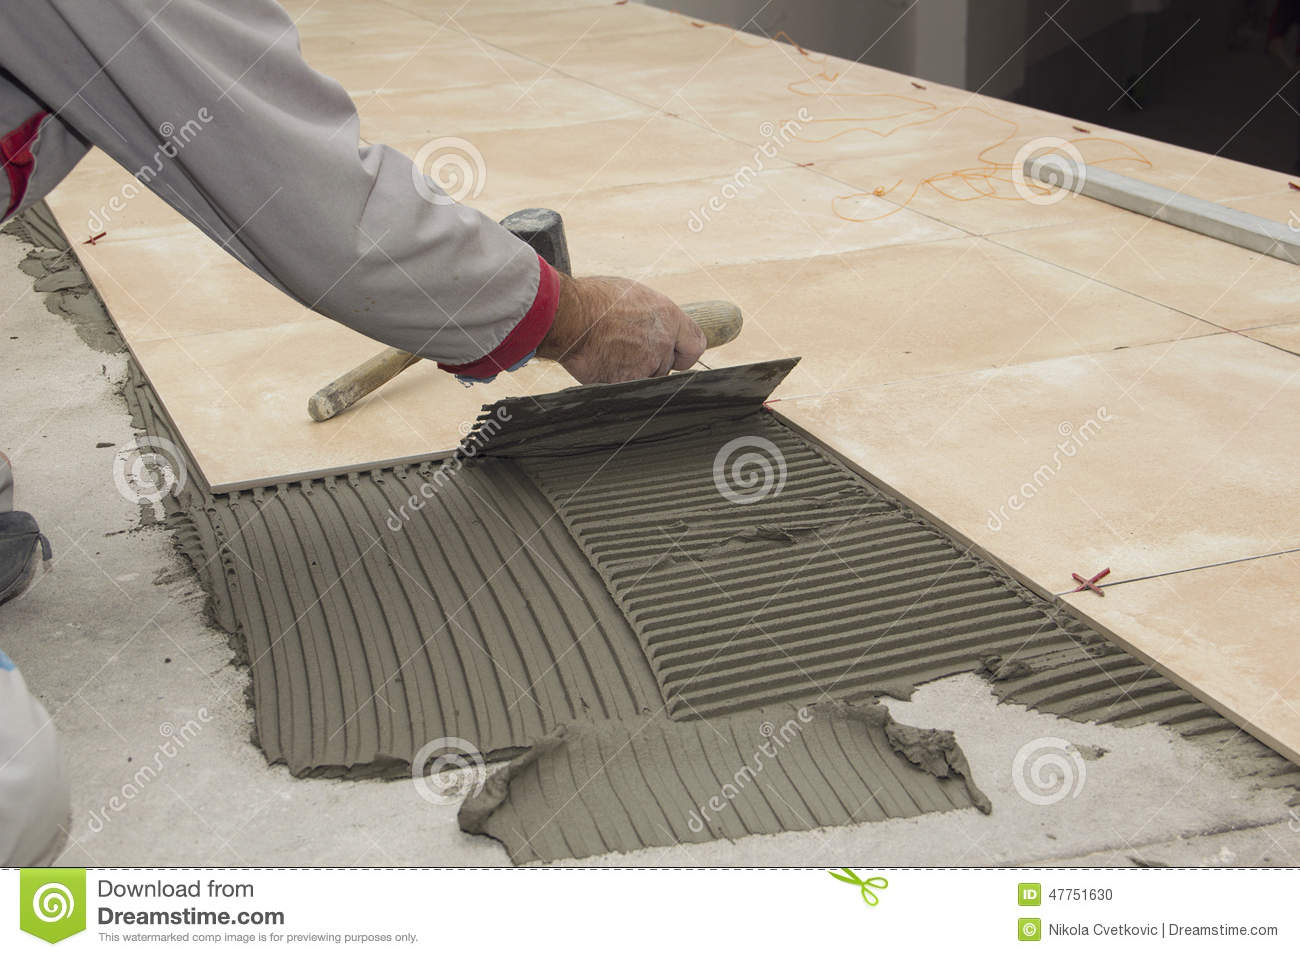 home-improvement-renovation-construction-worker-tiler-tiling-ceramic-tile-floor-adhesive-trowel-mortar-close-up-47751630.jpg